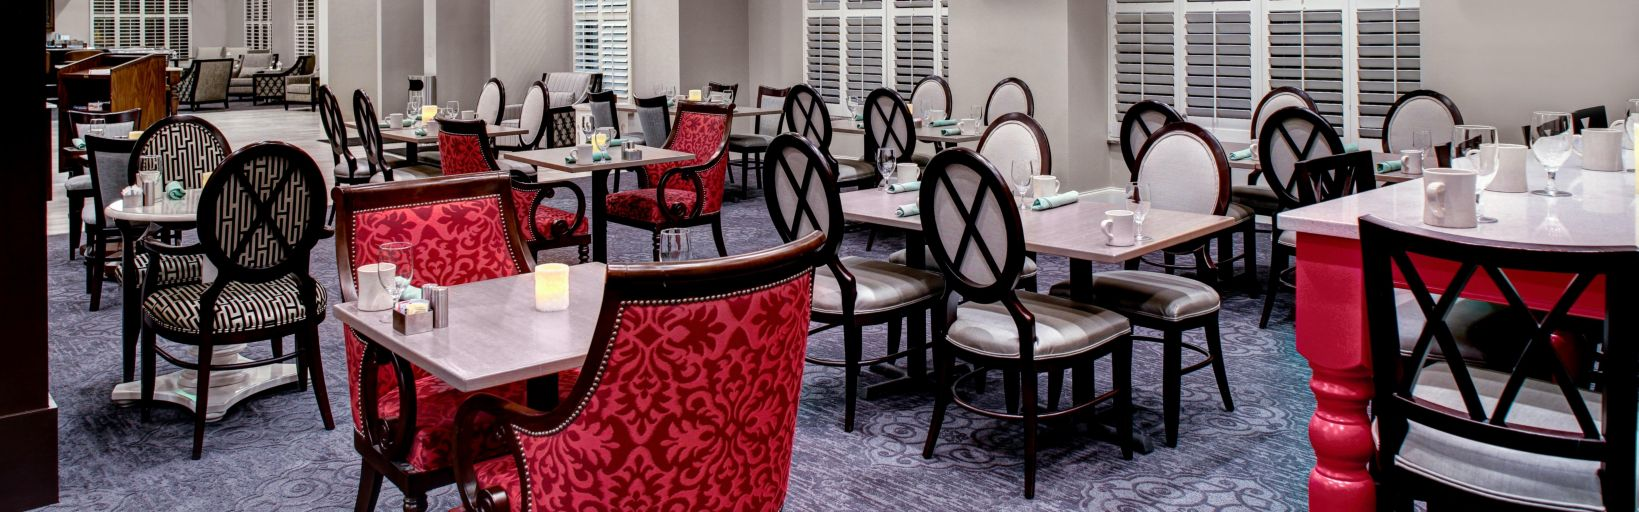 Enjoy A Great Meal At Our On Site Restaurant The Meeting Room